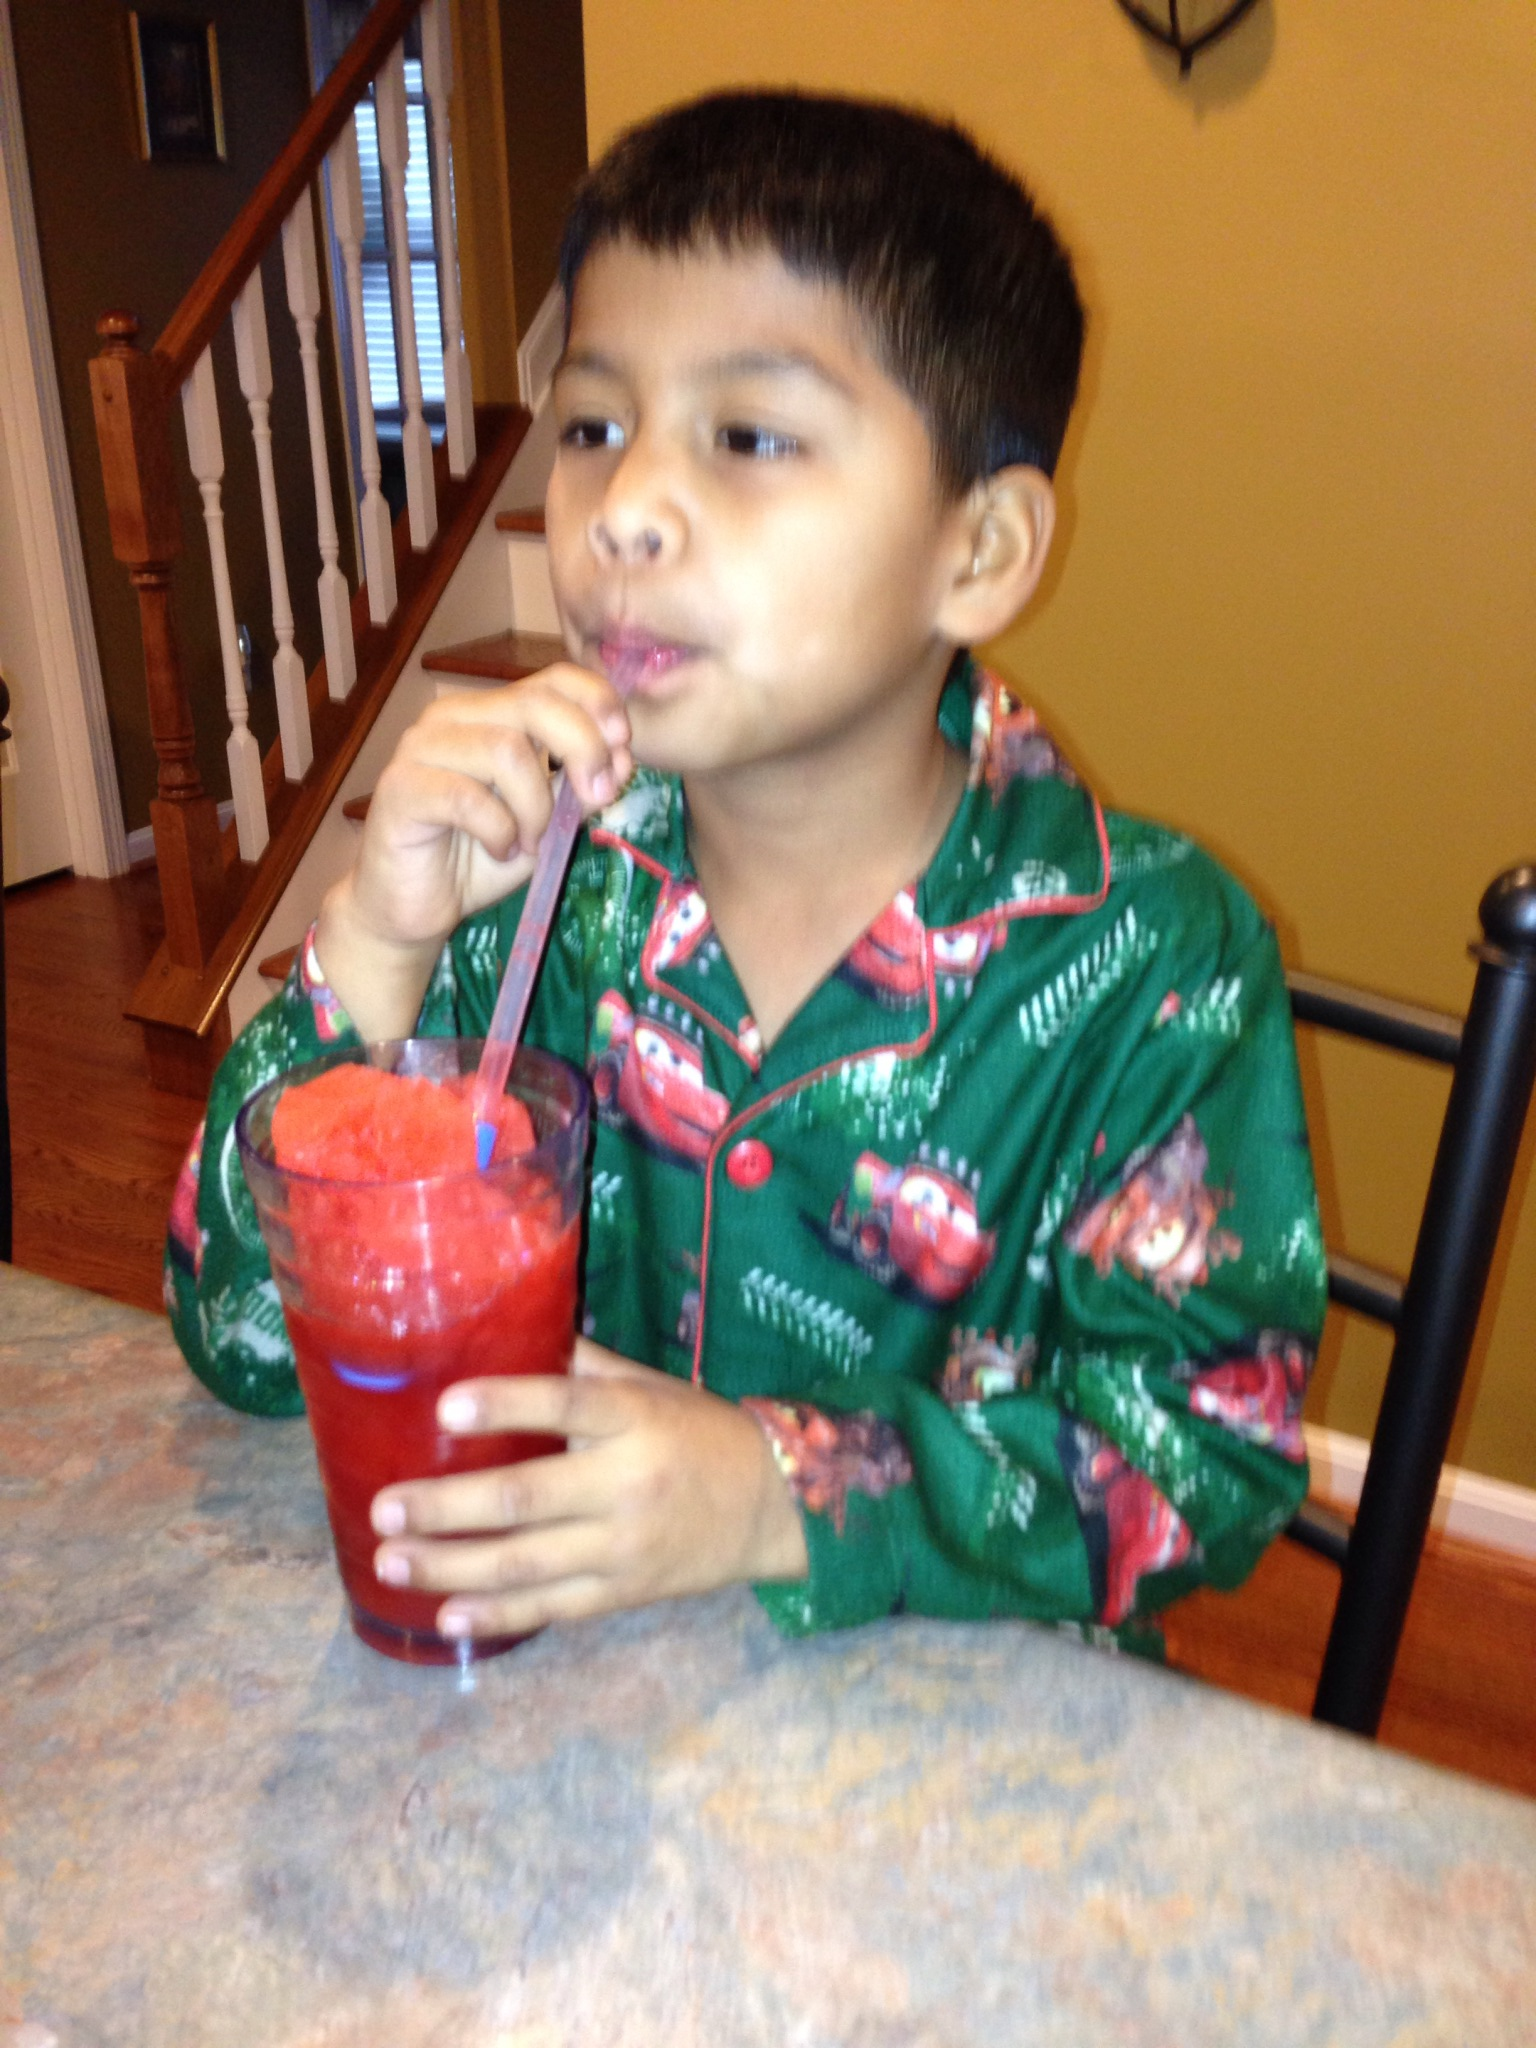 Make your own slushy magic with your kids! I promise you they will be impressed and it is an inexpensive treat!